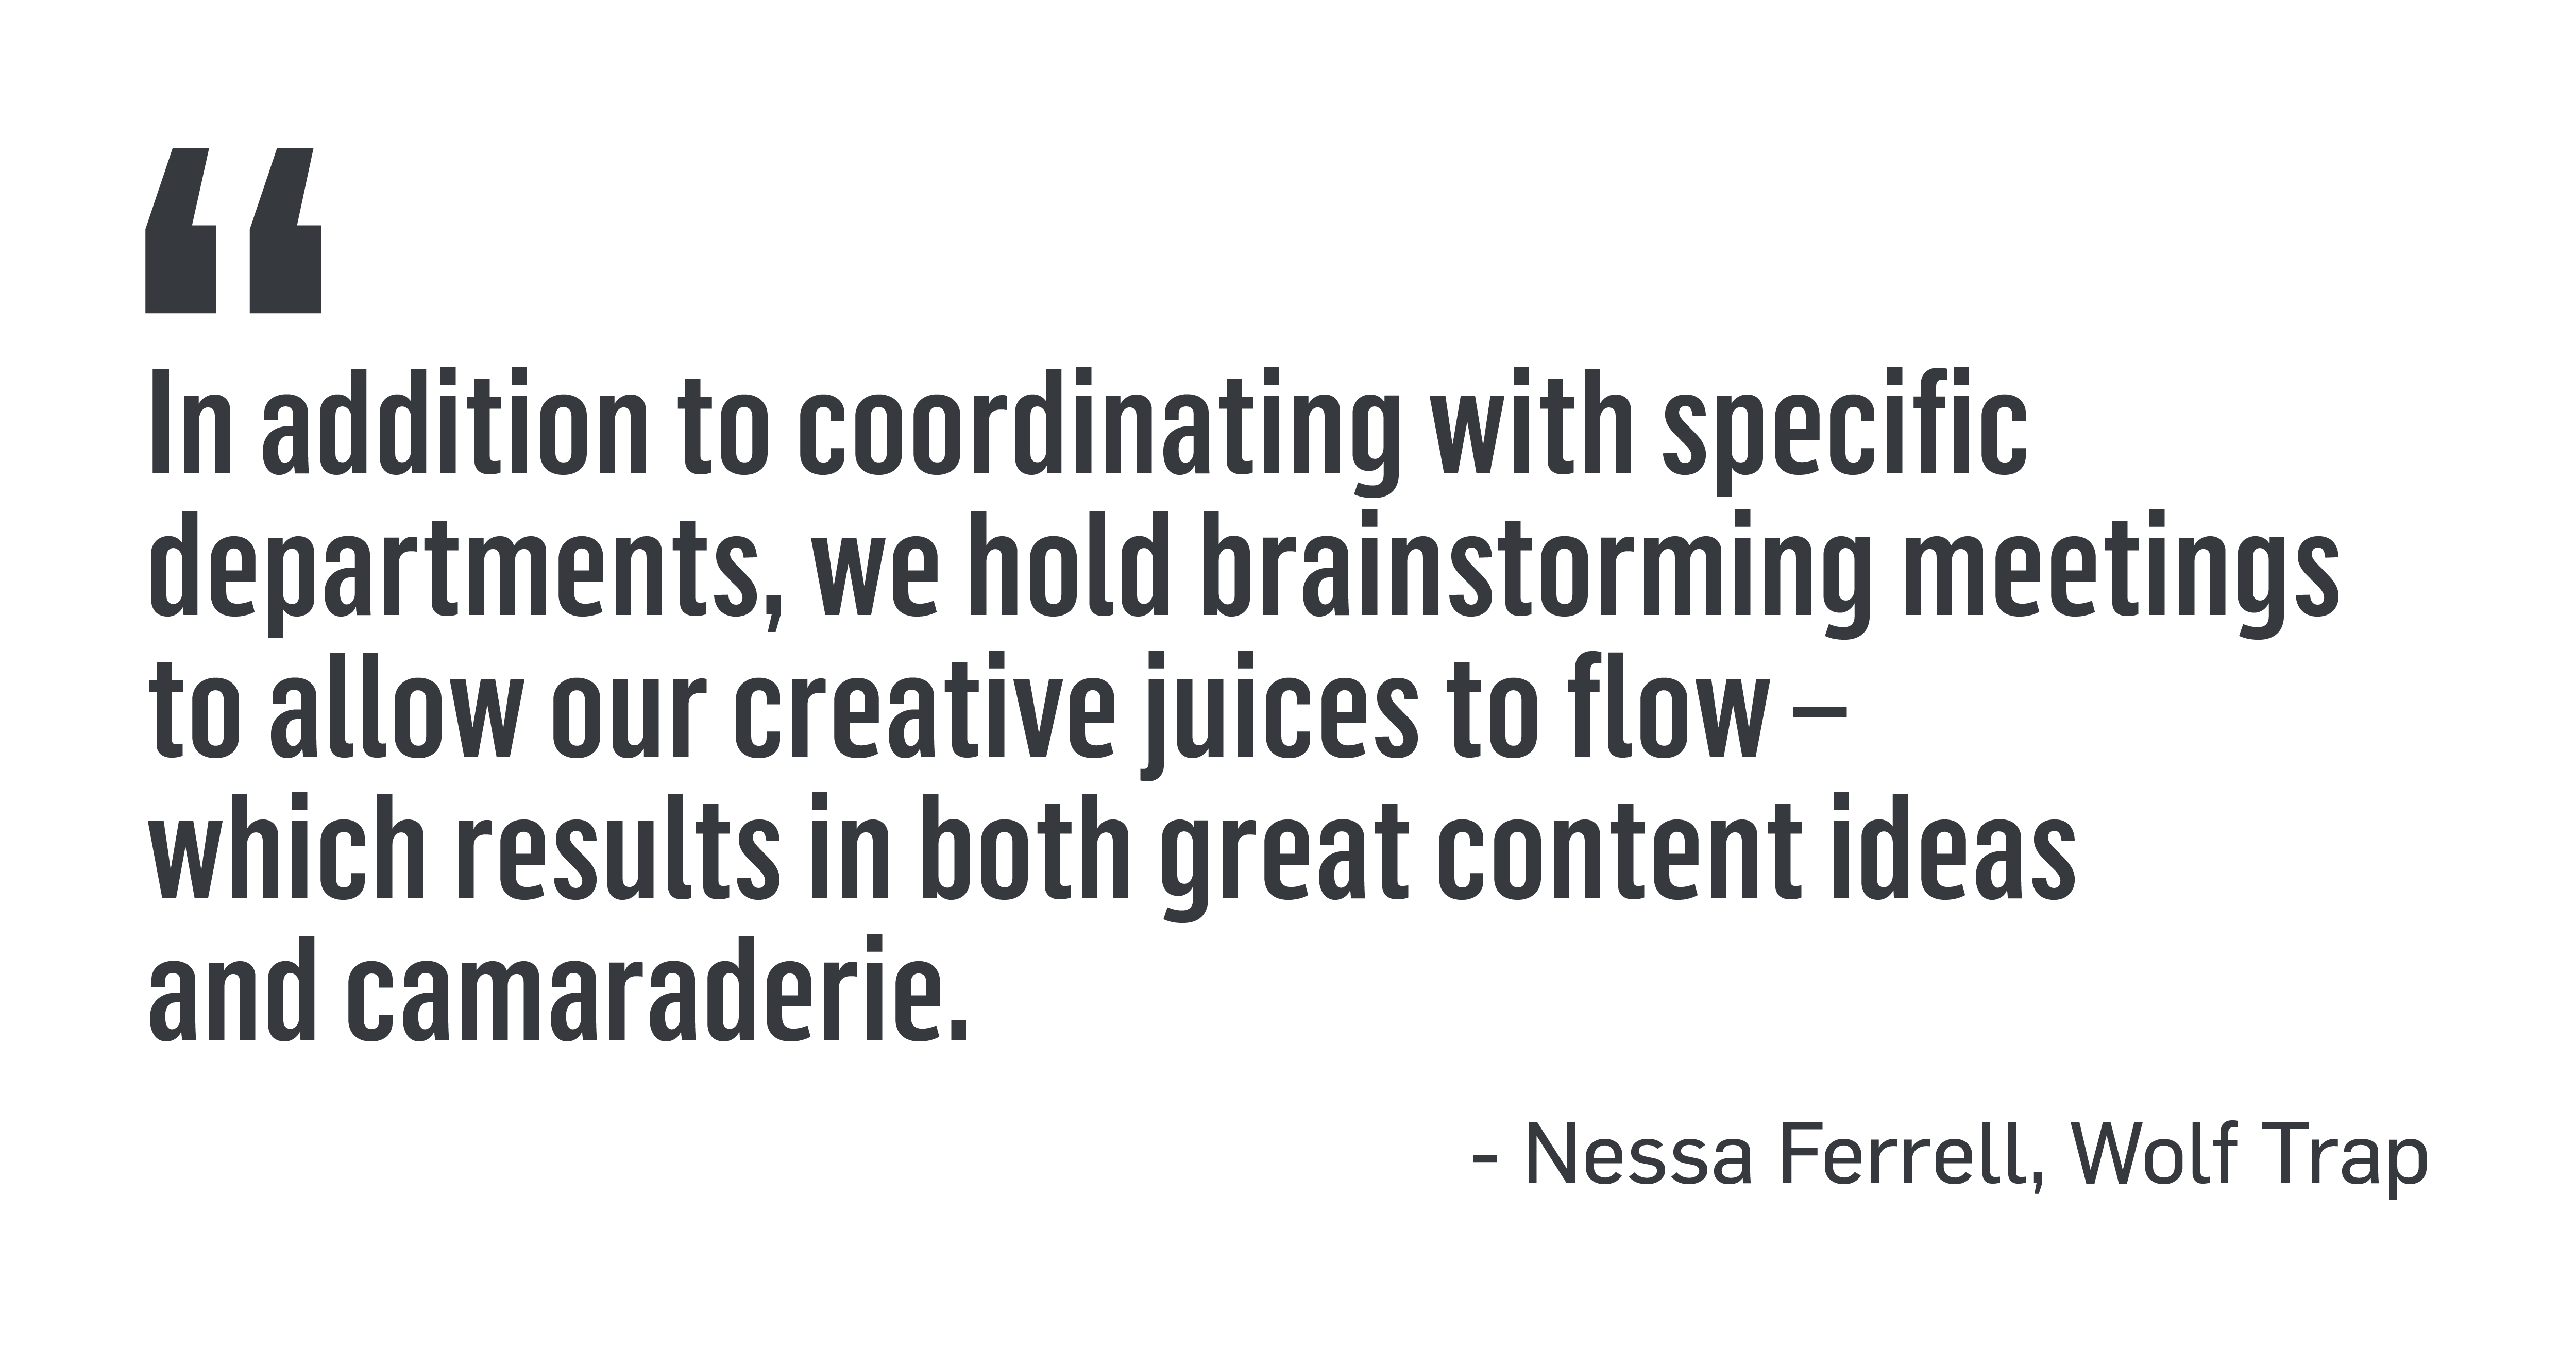 """PULL QUOTE: """"In addition to coordinating with specific departments, we hold brainstorming meetings to allow our creative juices to flow - which results in both great content ideas and camaraderie."""" - Nessa Ferrell, Wolf Trap"""